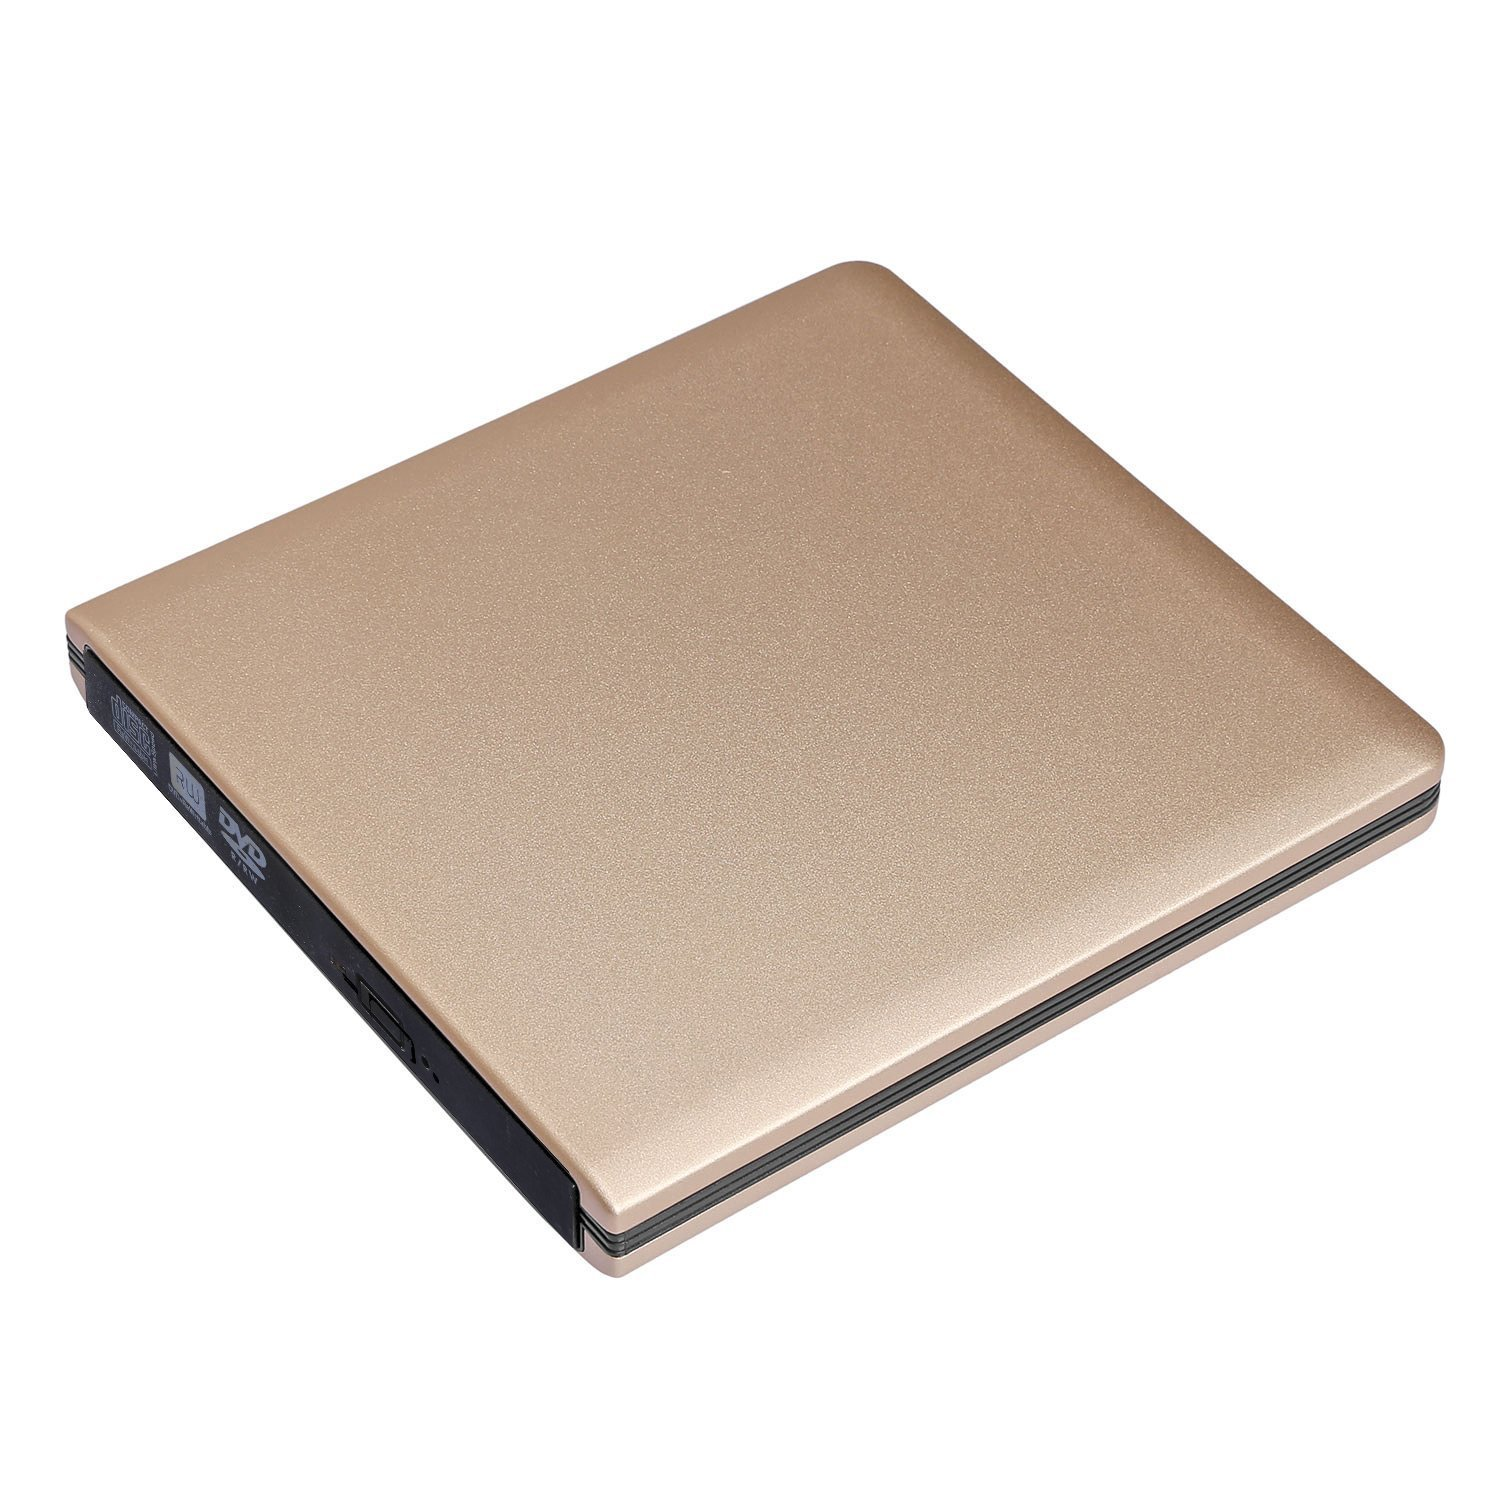 iStrong External USB 3.0 Portable DVD CD Drive Burner Ultra Slim Optical Drive CD - RW DVD - RW Superdrive for Mac MacBook Pro Laptop Notebook Desktop Golden